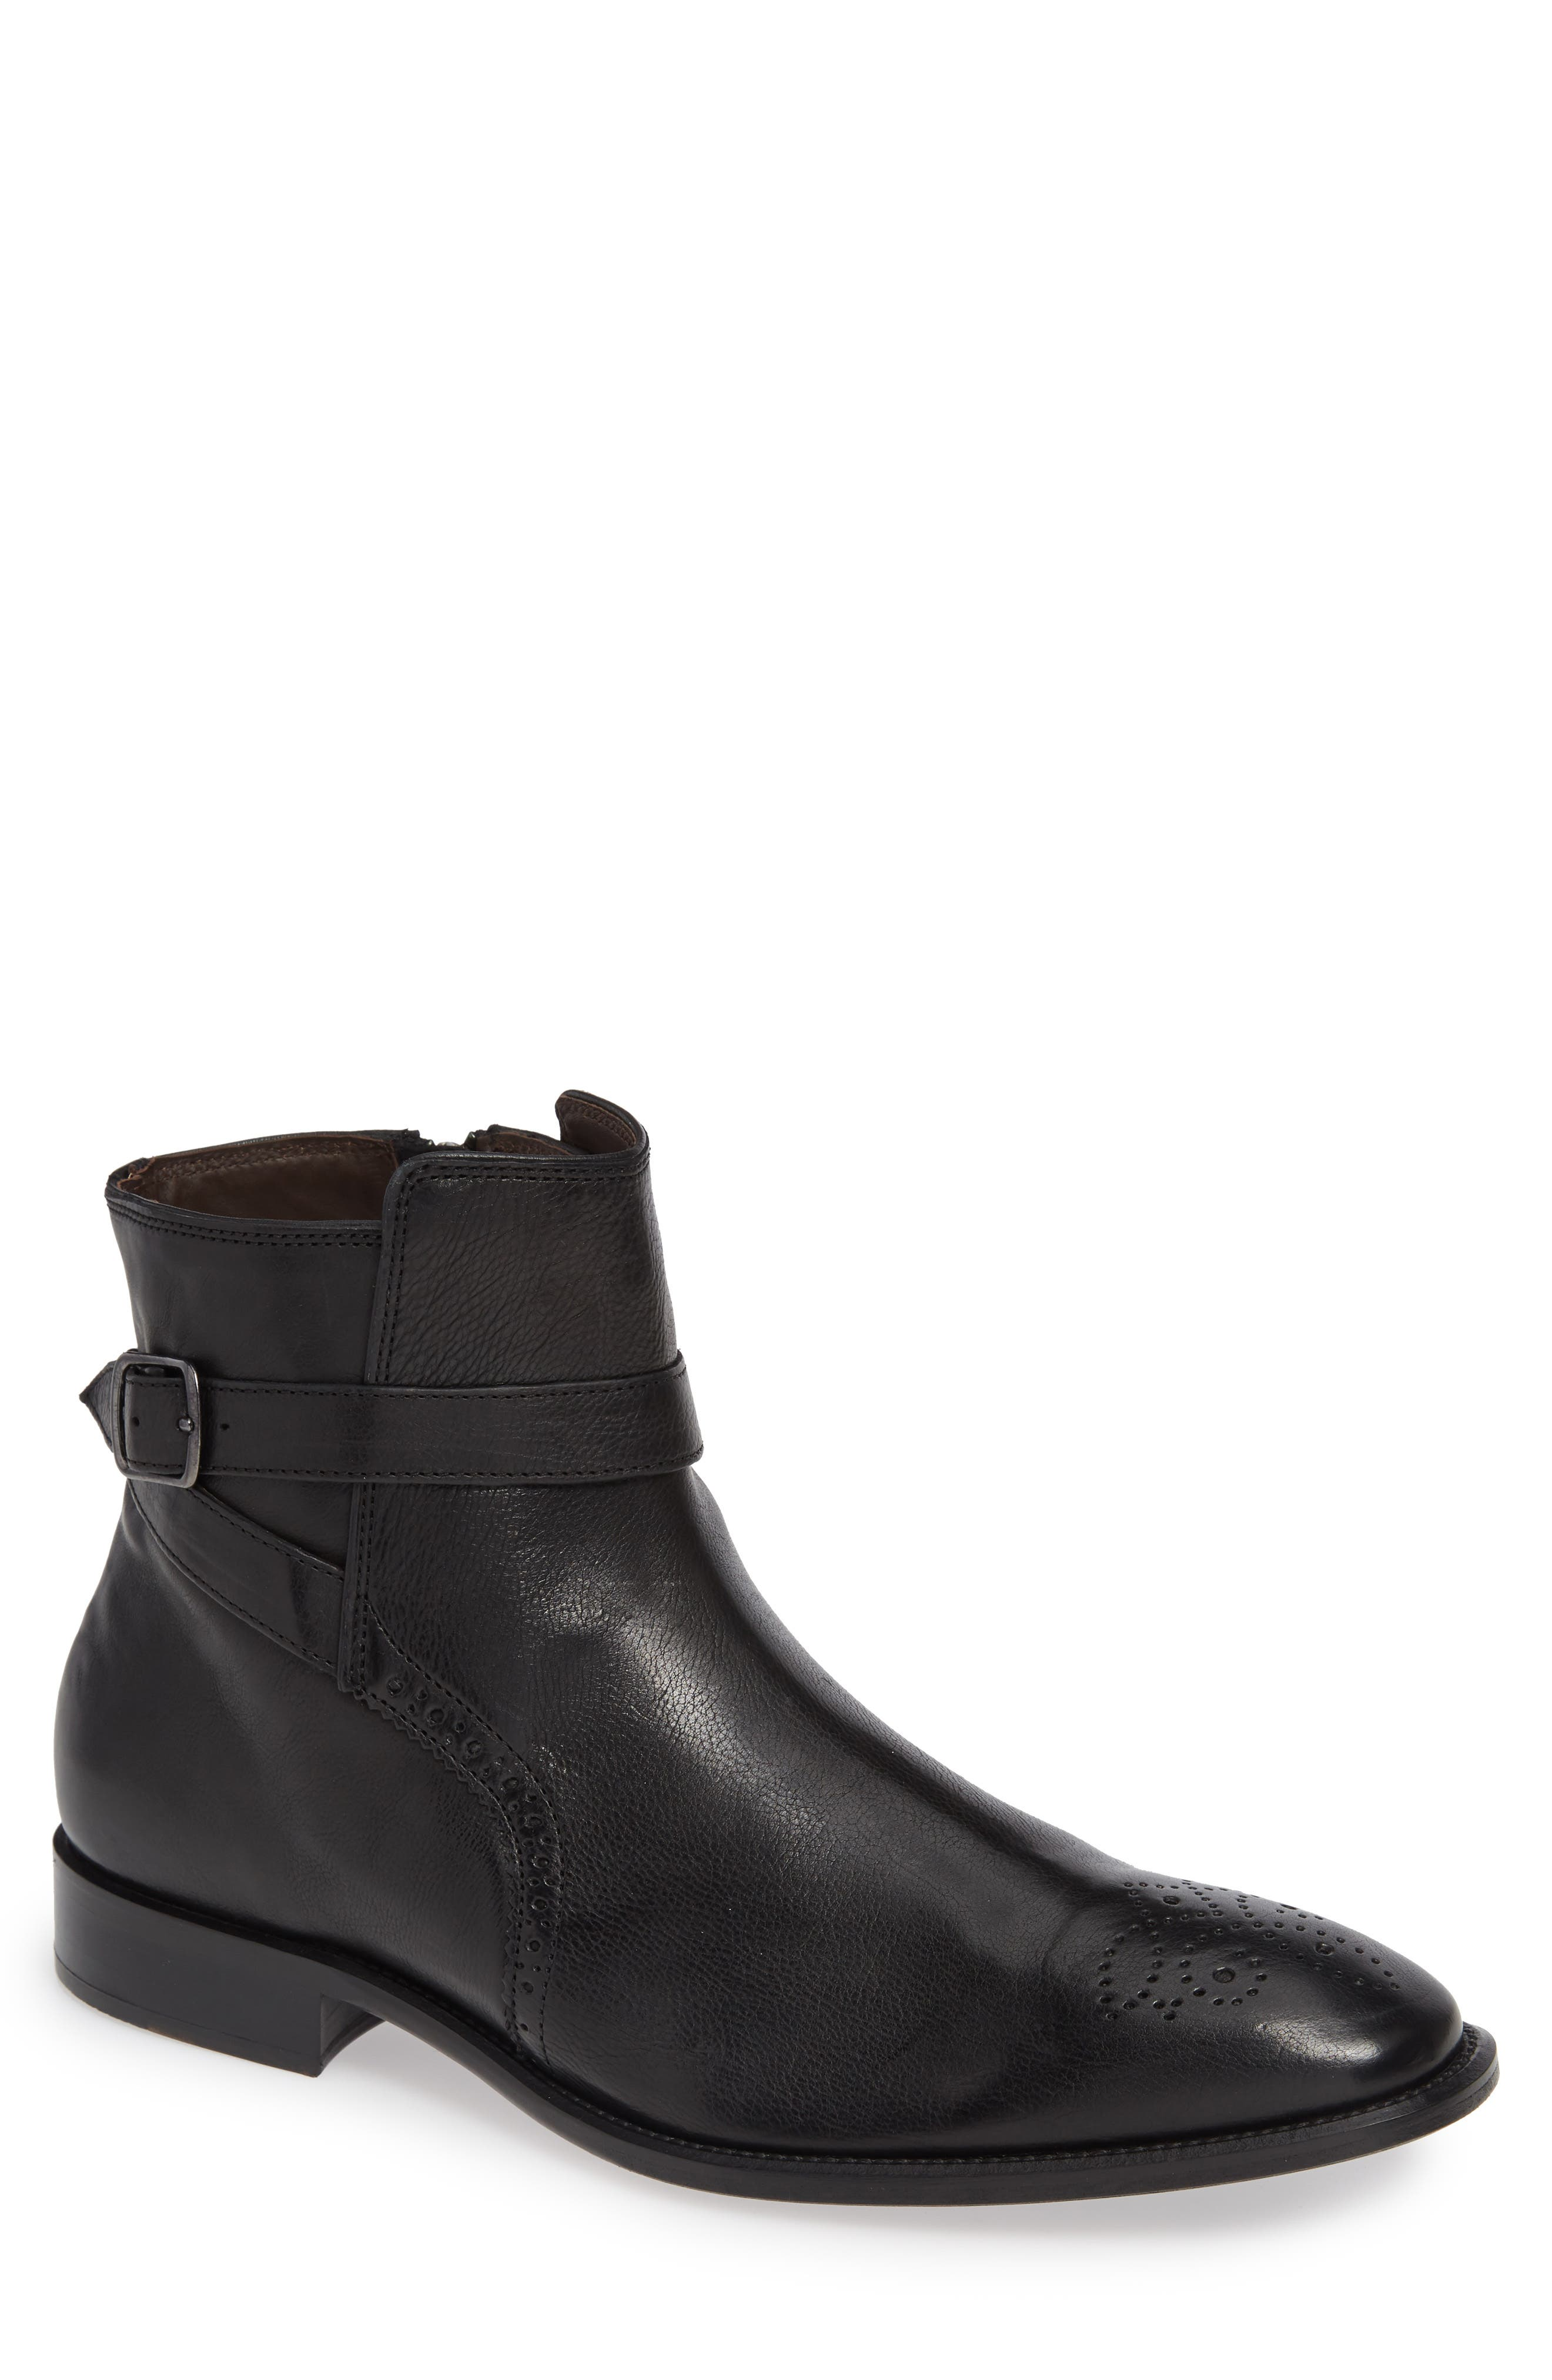 Maxwell Zip Boot,                             Main thumbnail 1, color,                             BLACK LEATHER